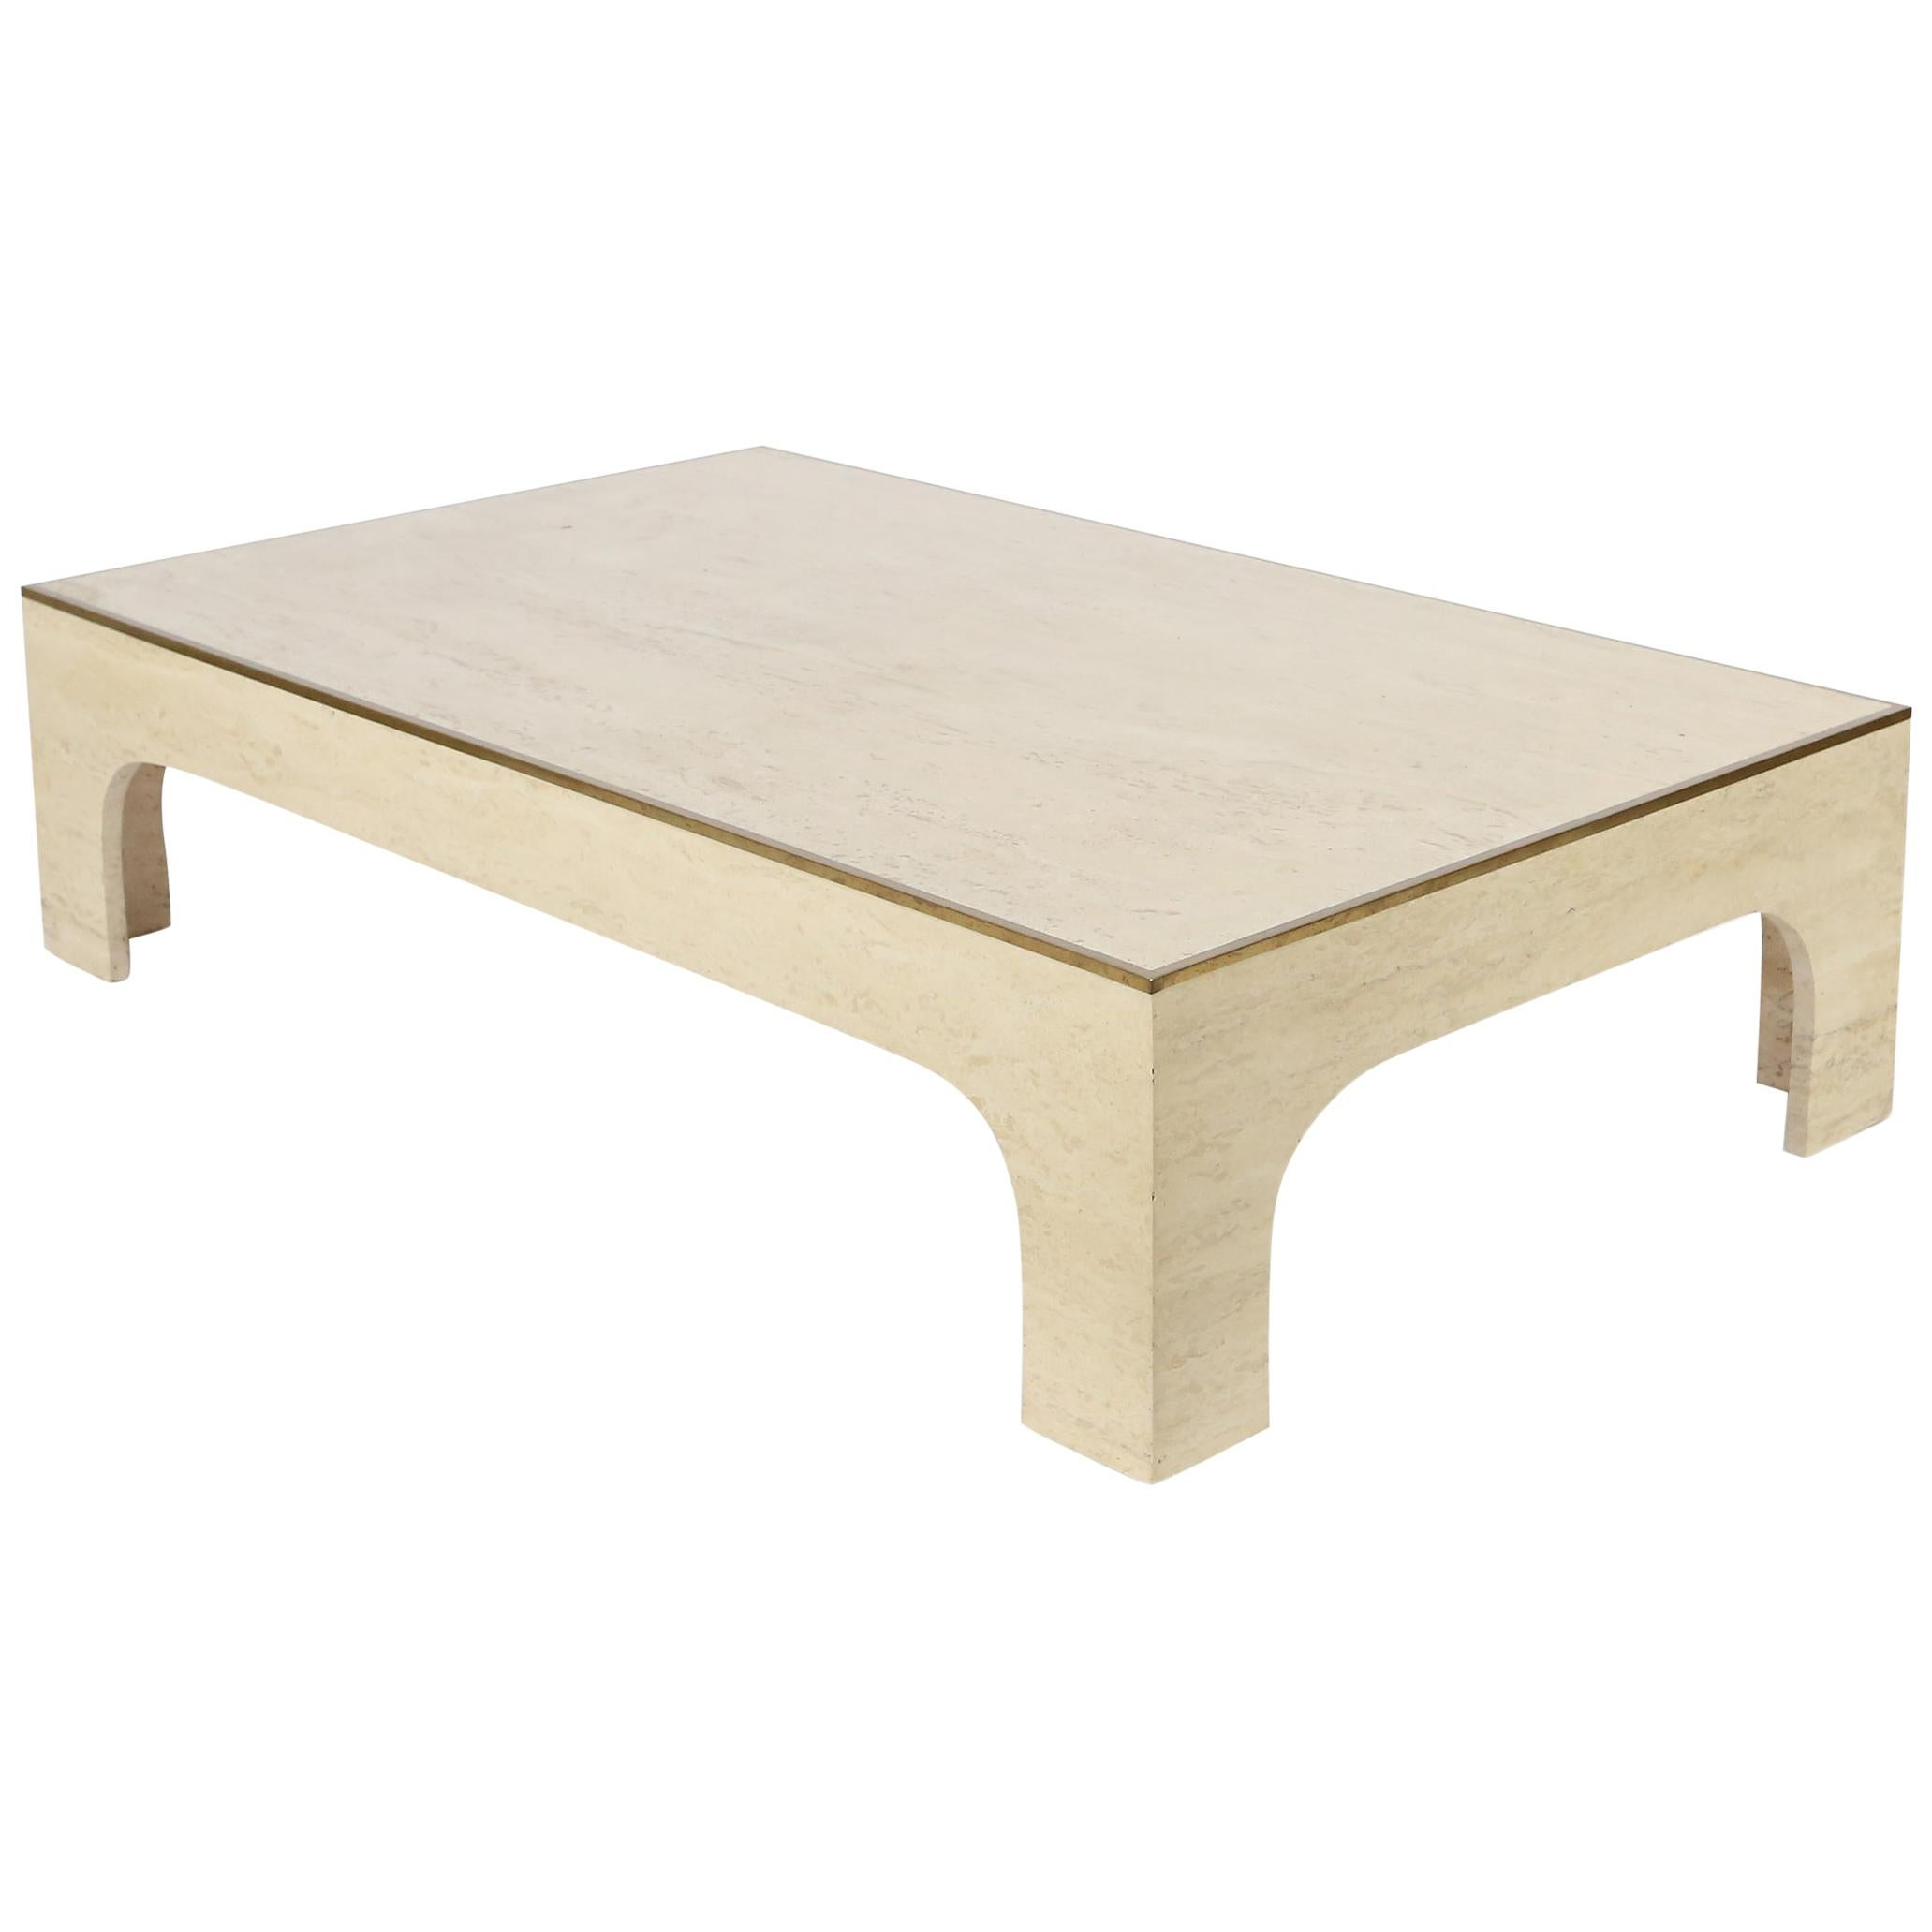 Travertine Coffee or Cocktail table by Willy Rizzo, circa 1970